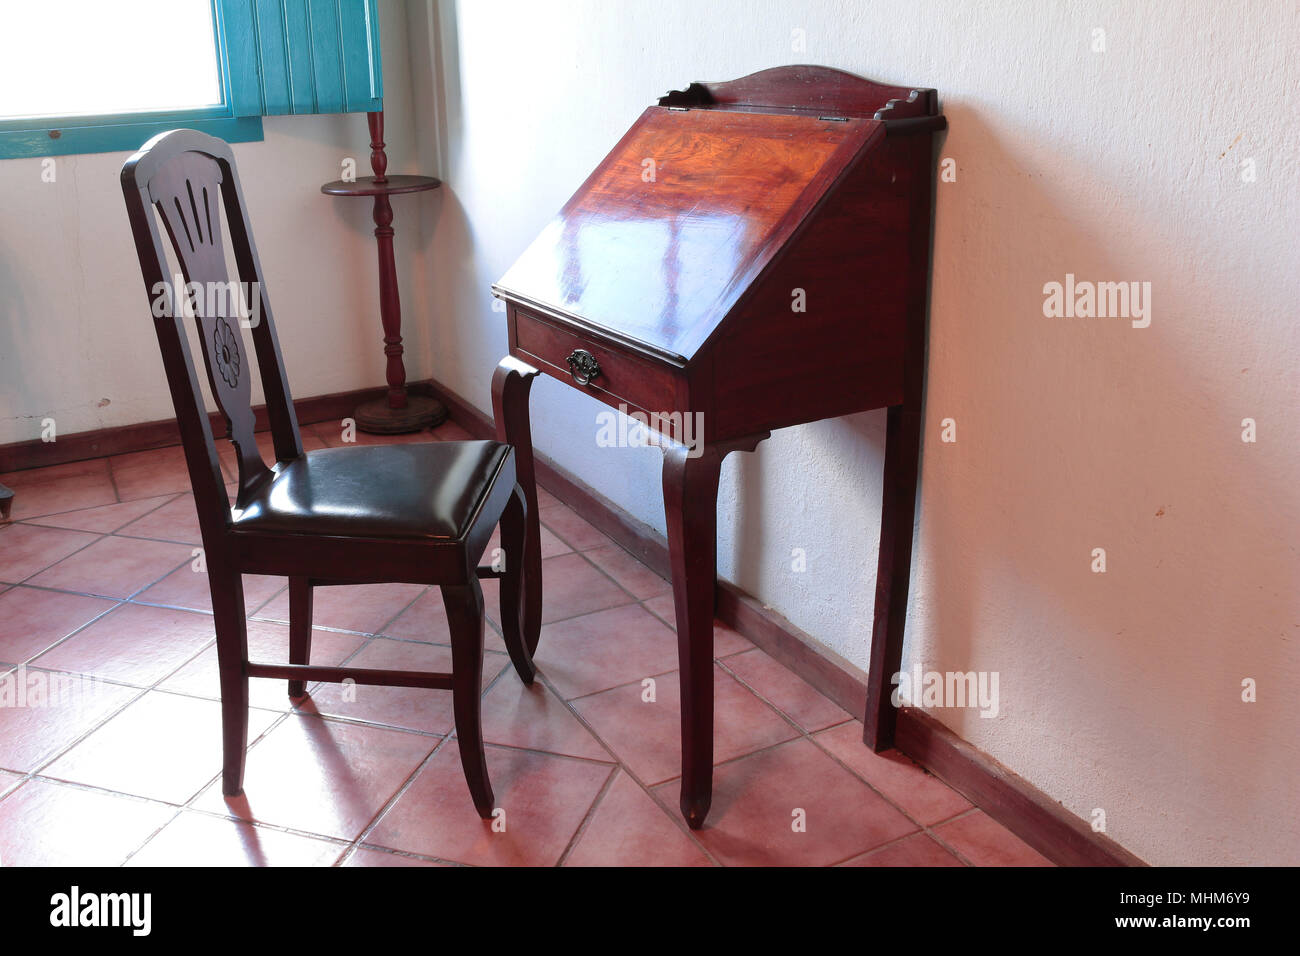 Old letter writing table desk - Stock Image